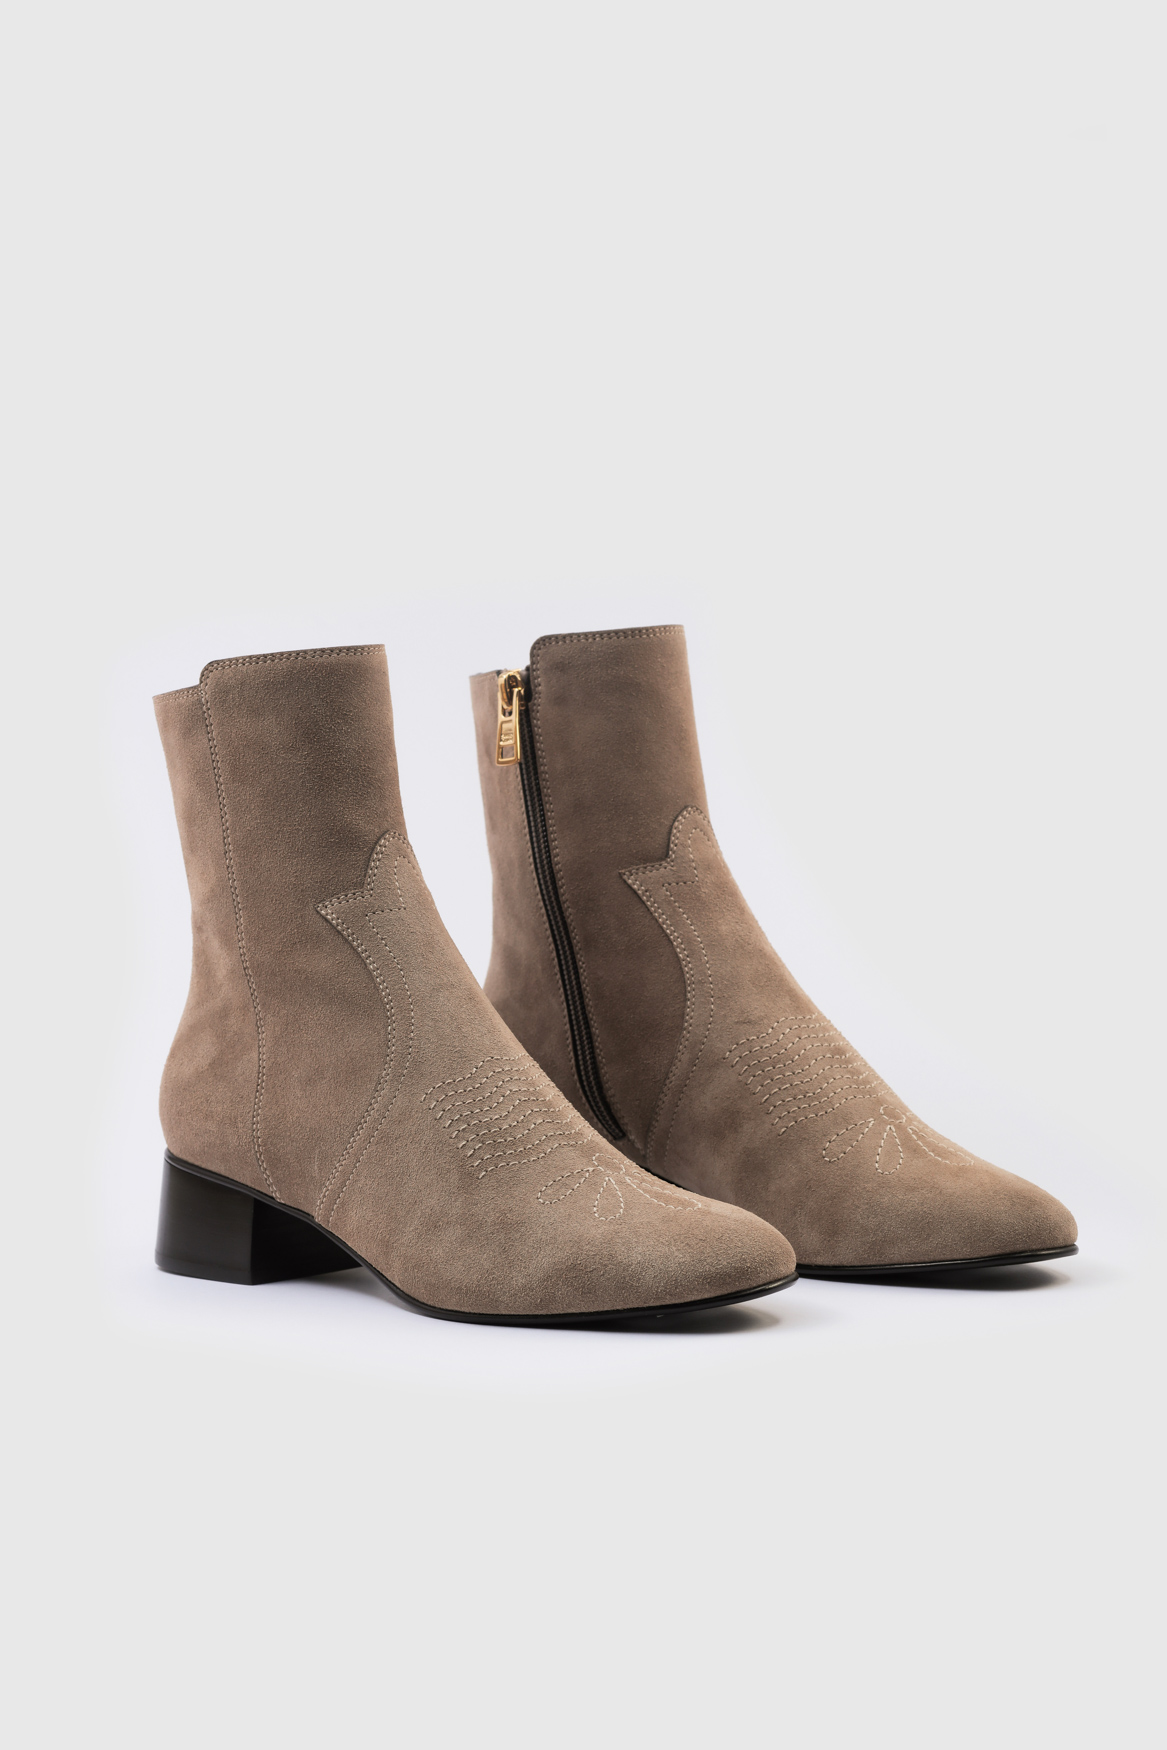 See By Chloé 37091A Boots, Taupe, 39